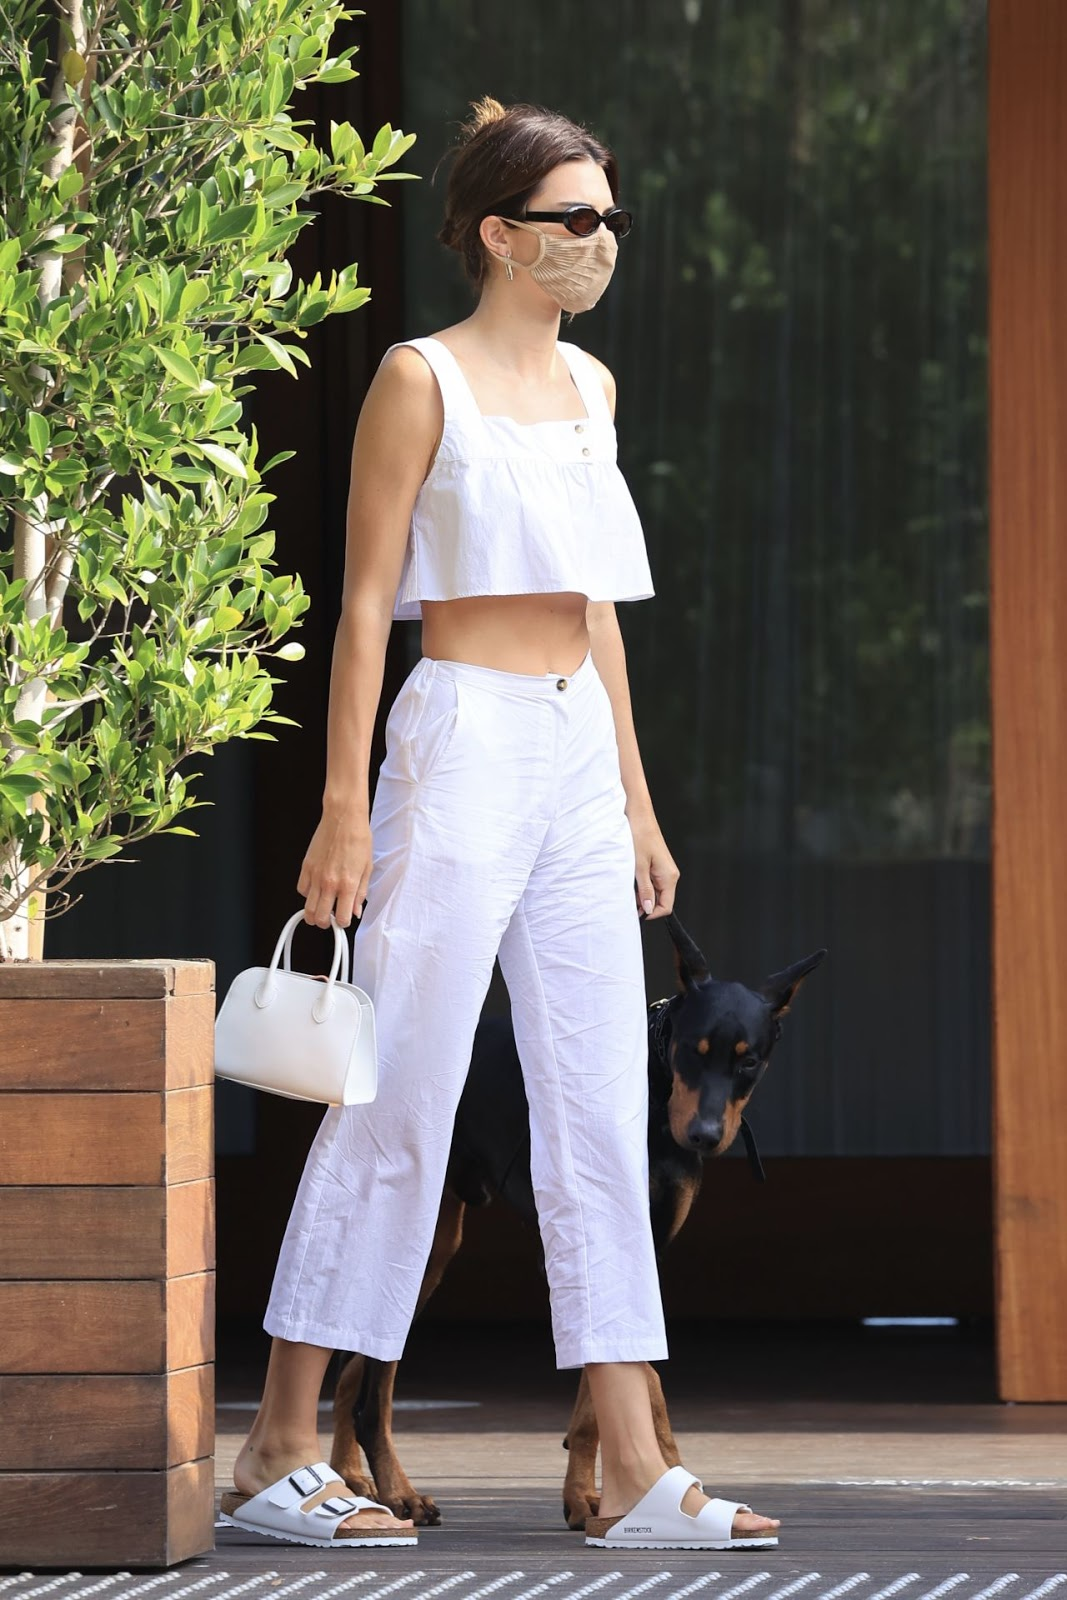 Kendall Jenner shows off her taut tummy in a white crop top while dining with friends in Malibu before driving everyone in her classic Cadillac